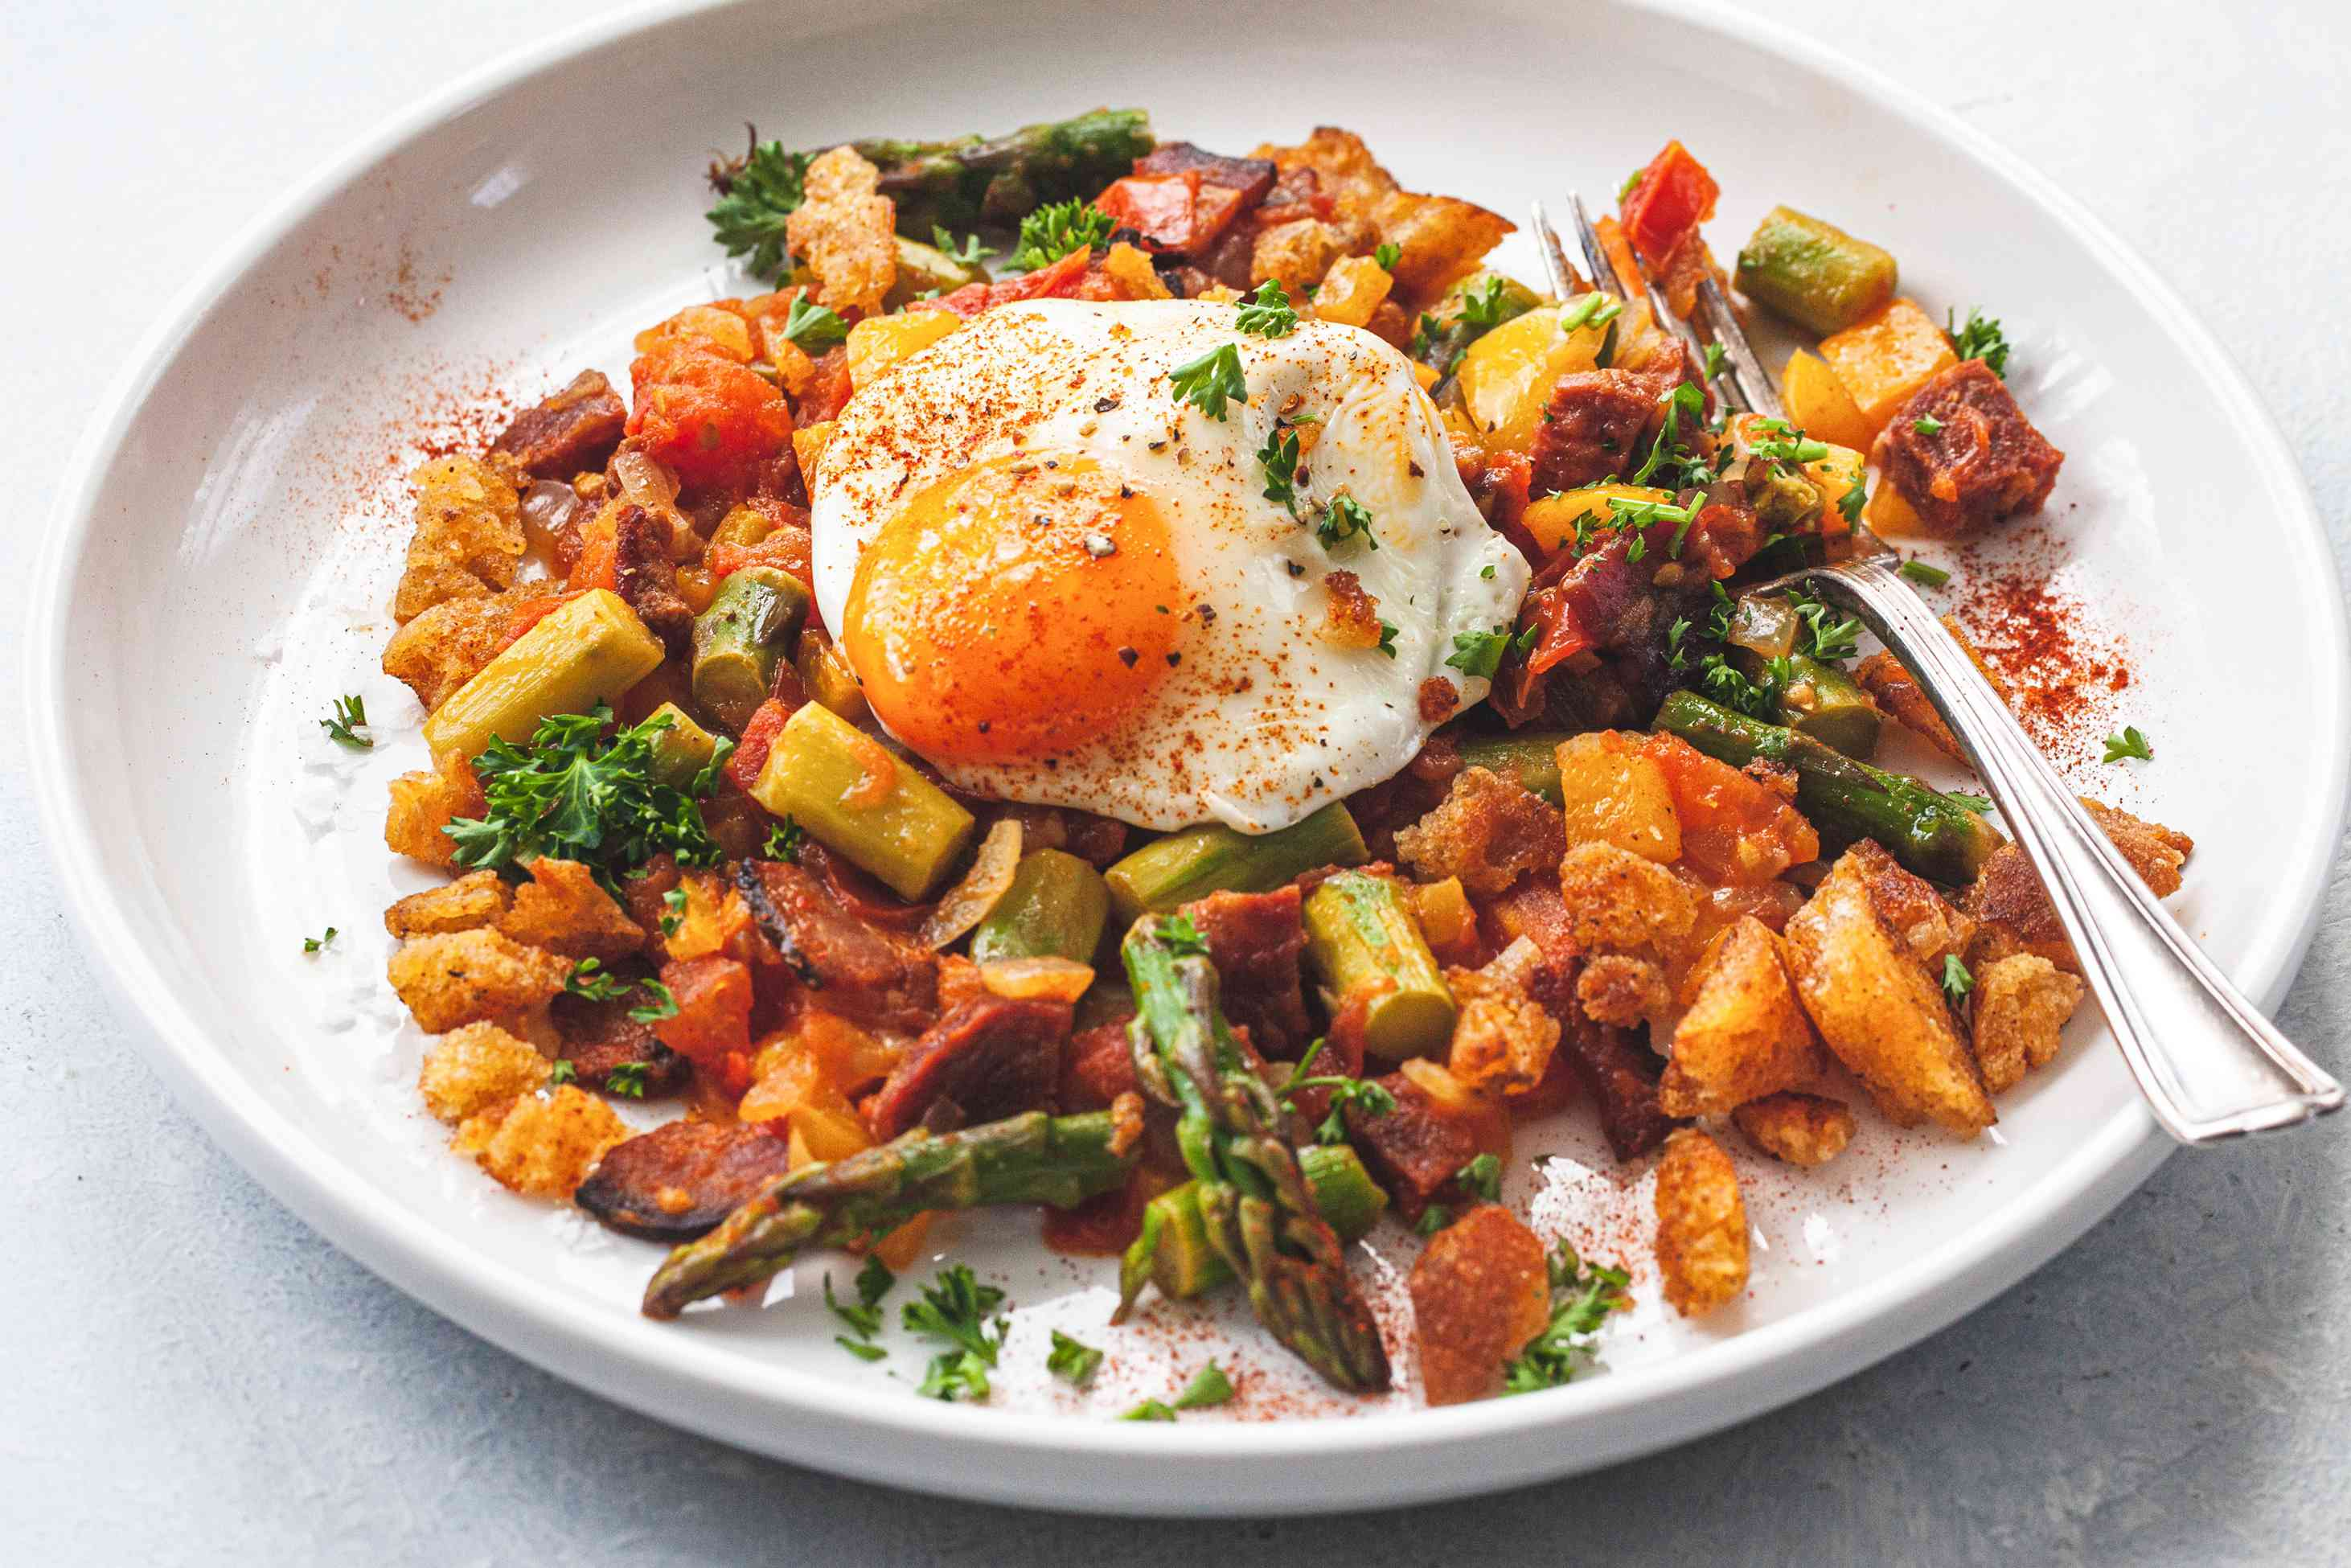 A white plate with Spanish Style Migas with Asparagus, Chorizo, Bacon, and Eggs.